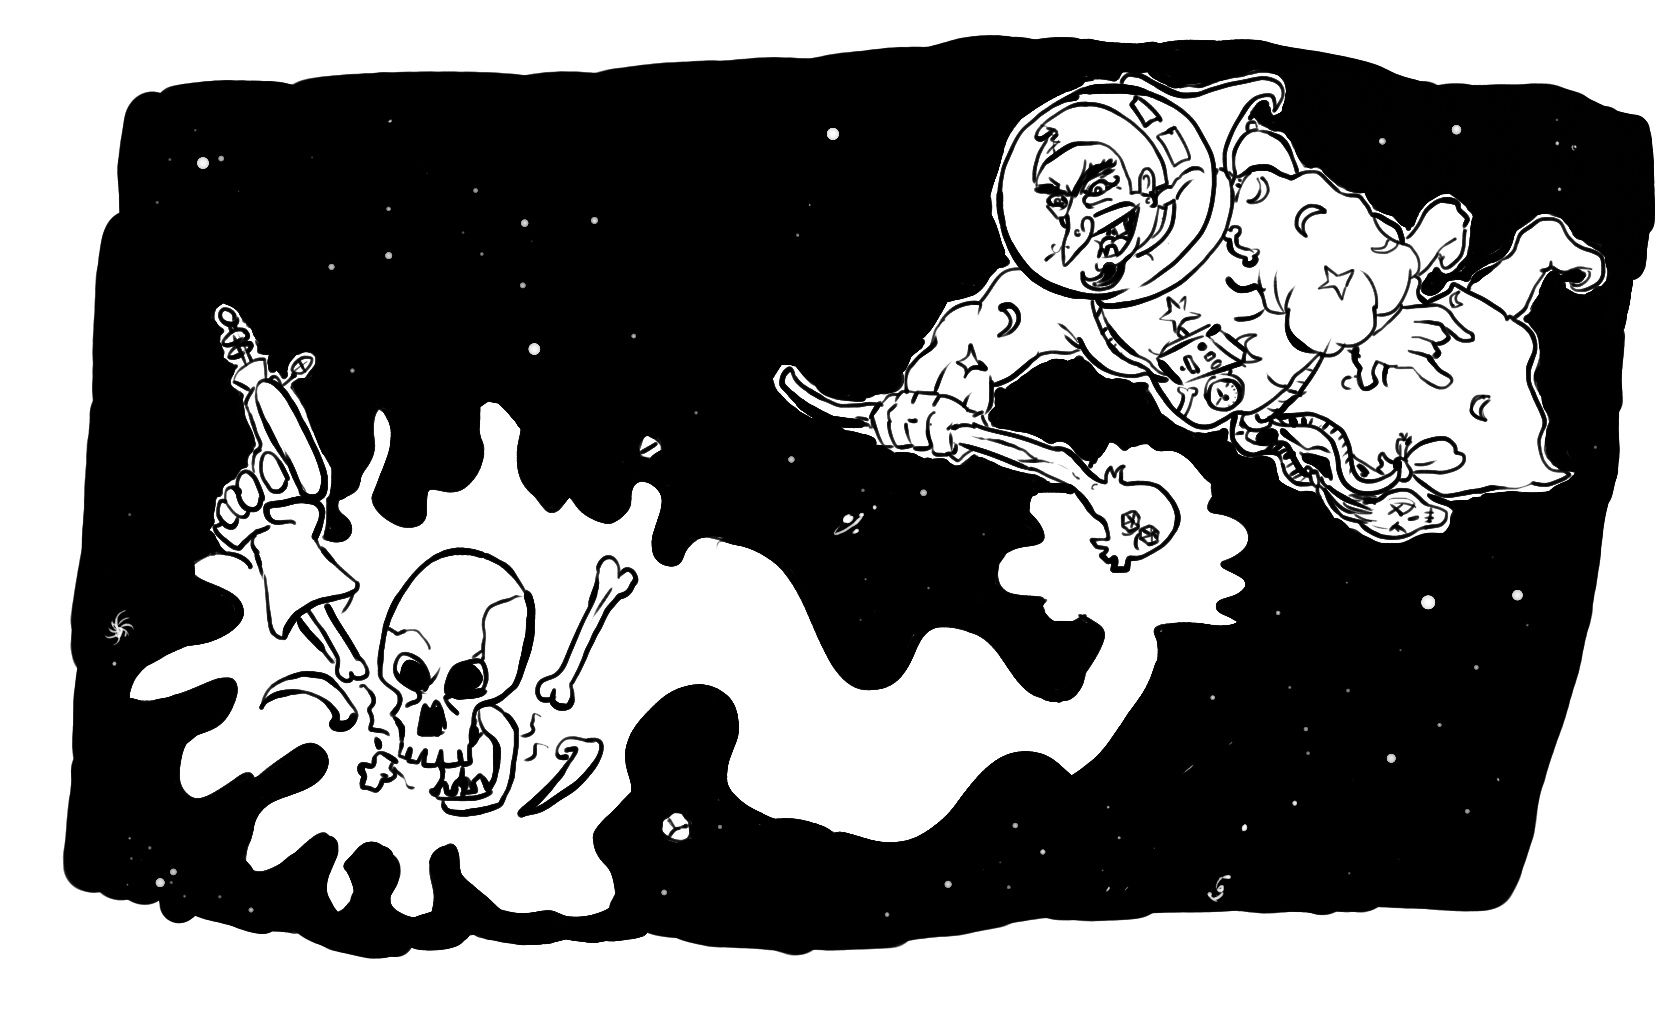 Where space skeletons come from